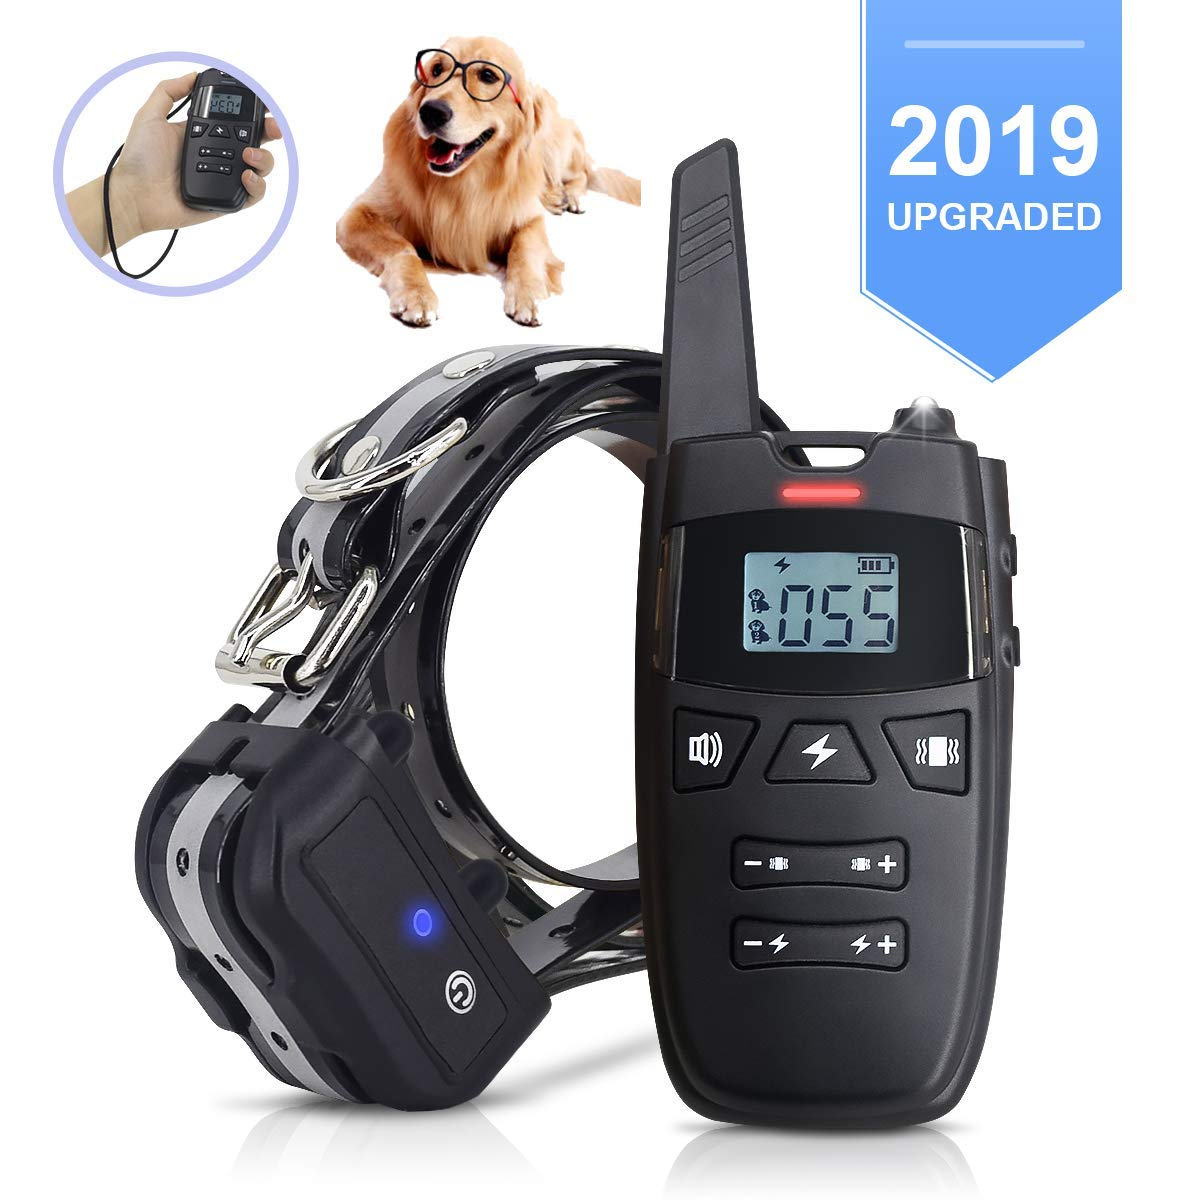 FRUITEAM Dog Training Collar with Light, 2019 New Rechargeable E-Collar with 3 Training Modes Beep, Vibration Shock, 1640 Ft Remote Range IP67 Waterproof Adjustable Dog Shock Collar for All Breeds